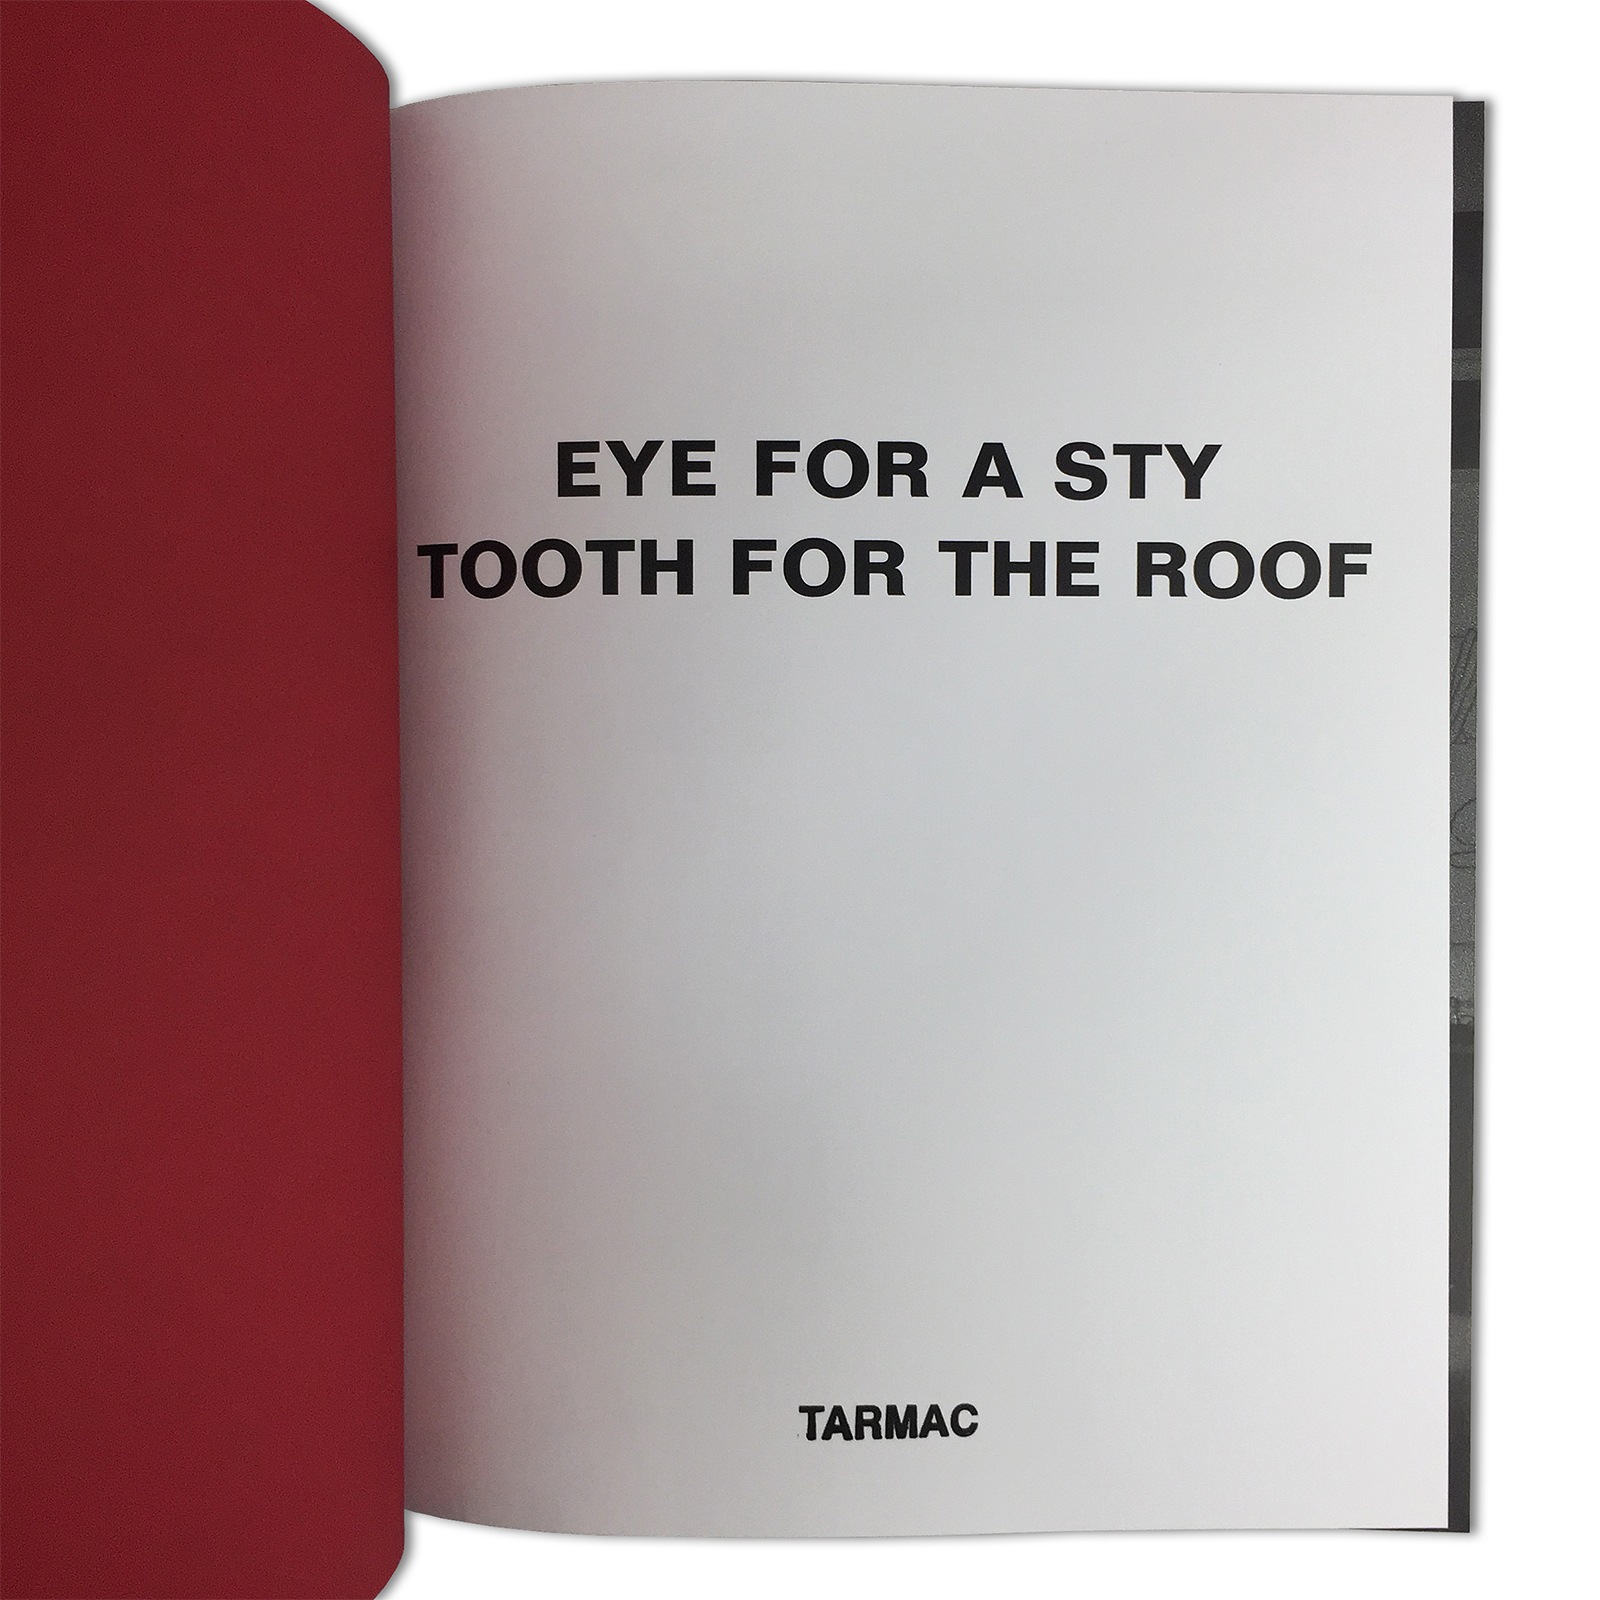 Eye For A Sty, Tooth For The Roof Danny Fox Kingsley Ifill